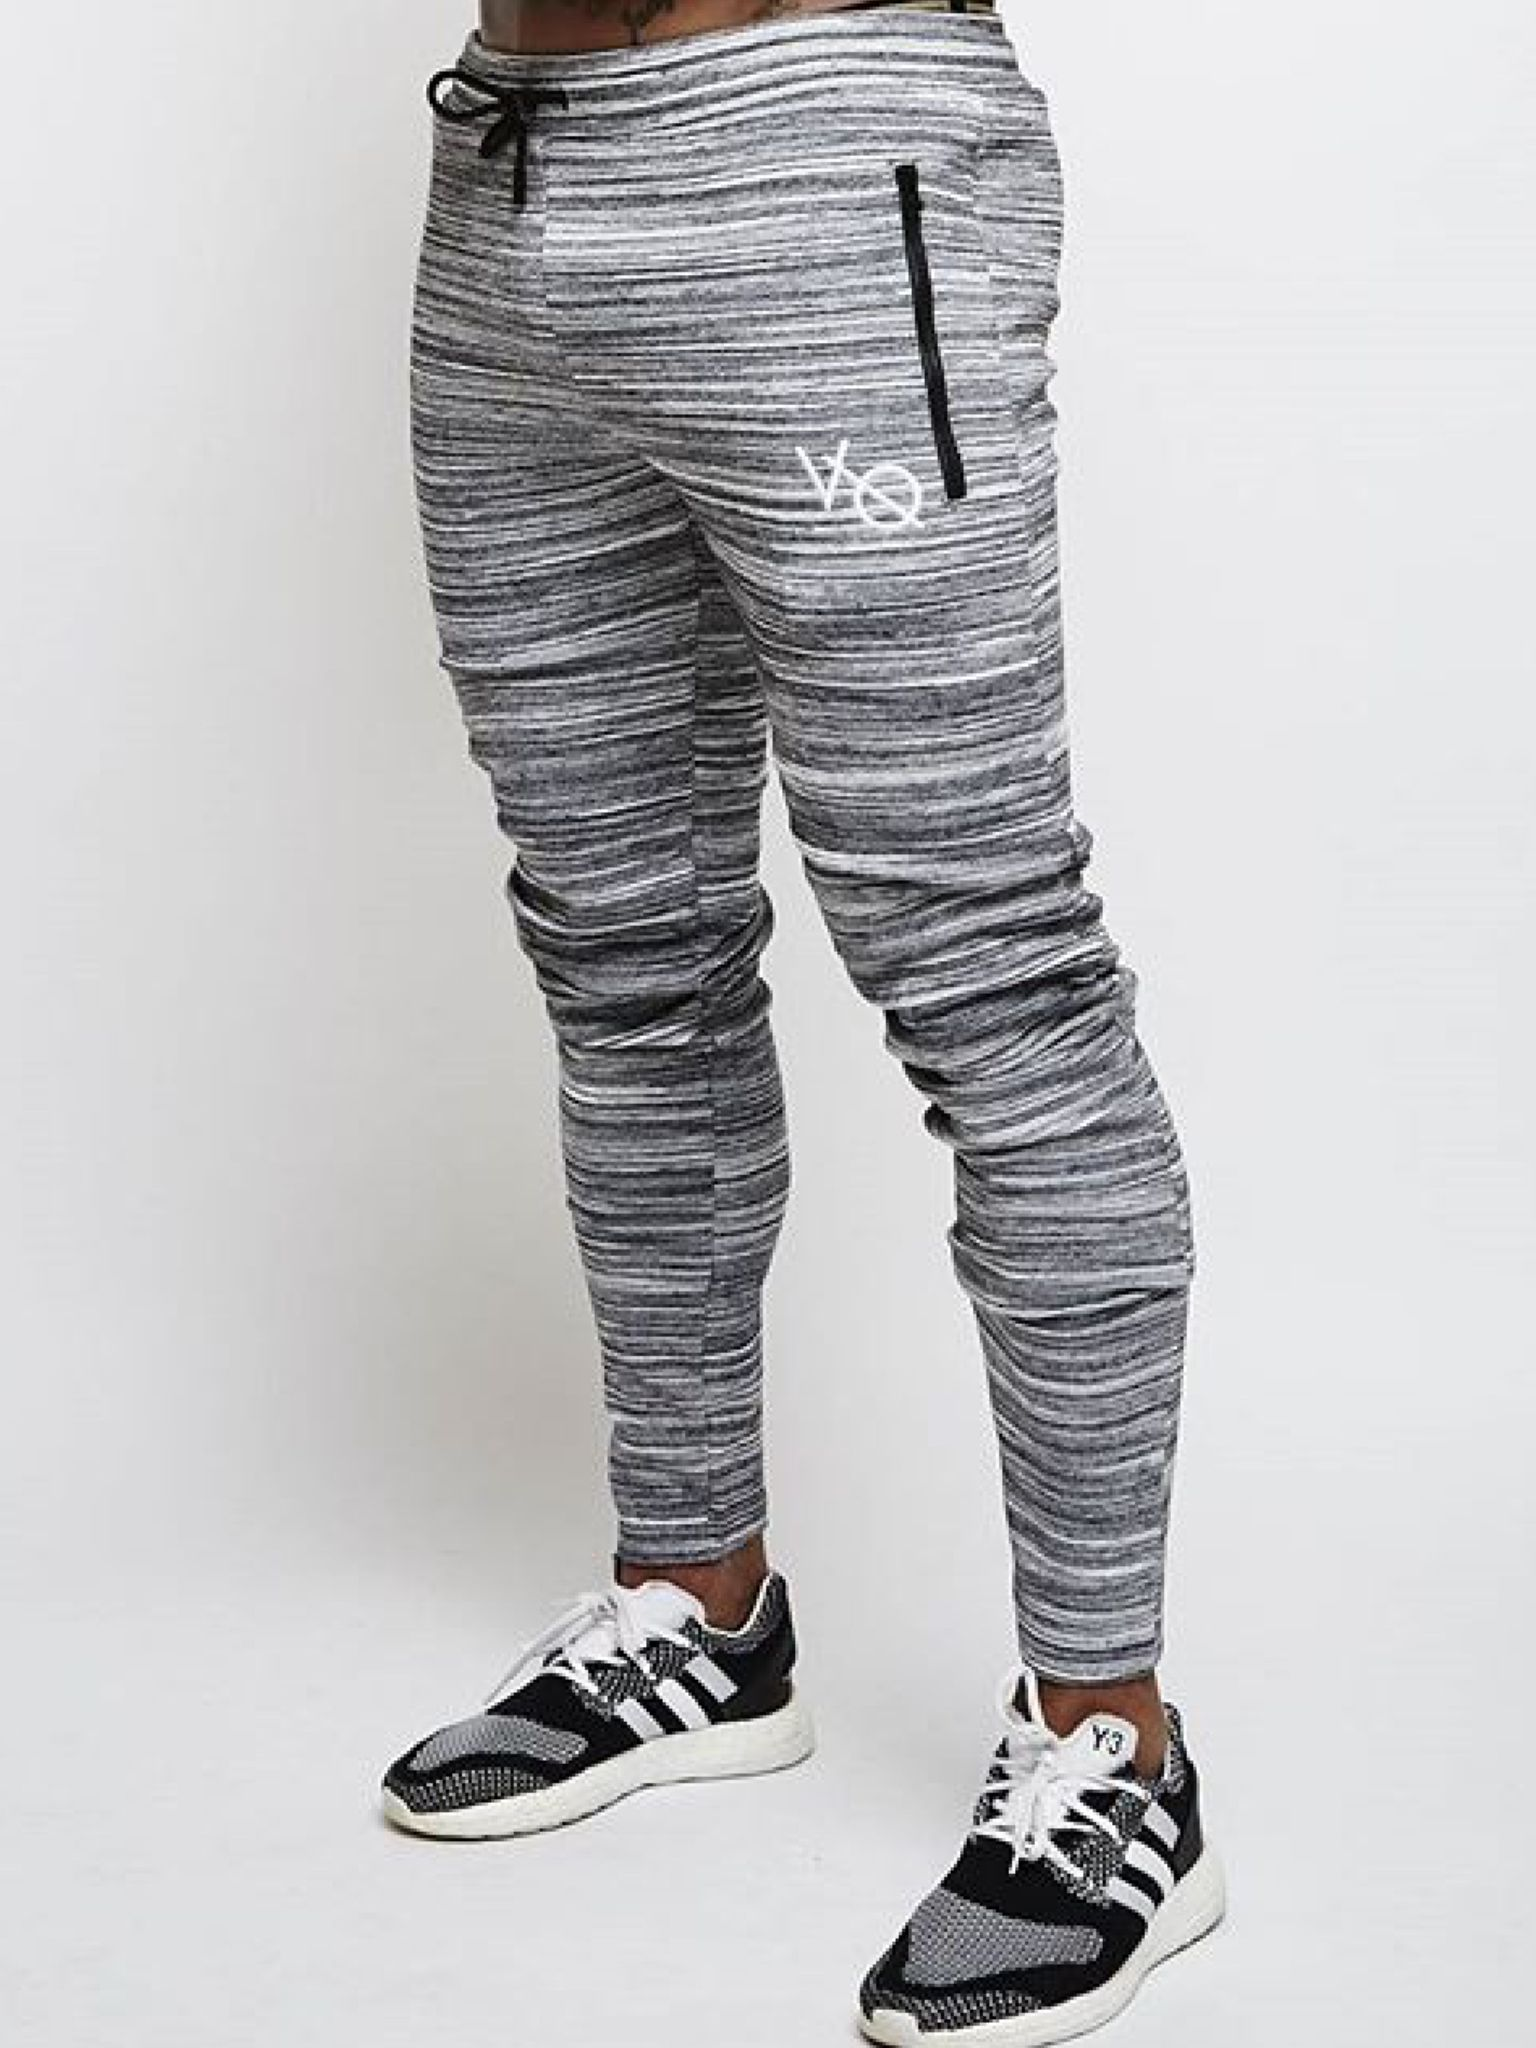 02b064ae0 Vanquish Slate Grey Flux Tapered Sweatpants from Vanquish Fitness | Fitness  Clothing | Tapered sweatpants, Outerwear jackets, Sweatpants